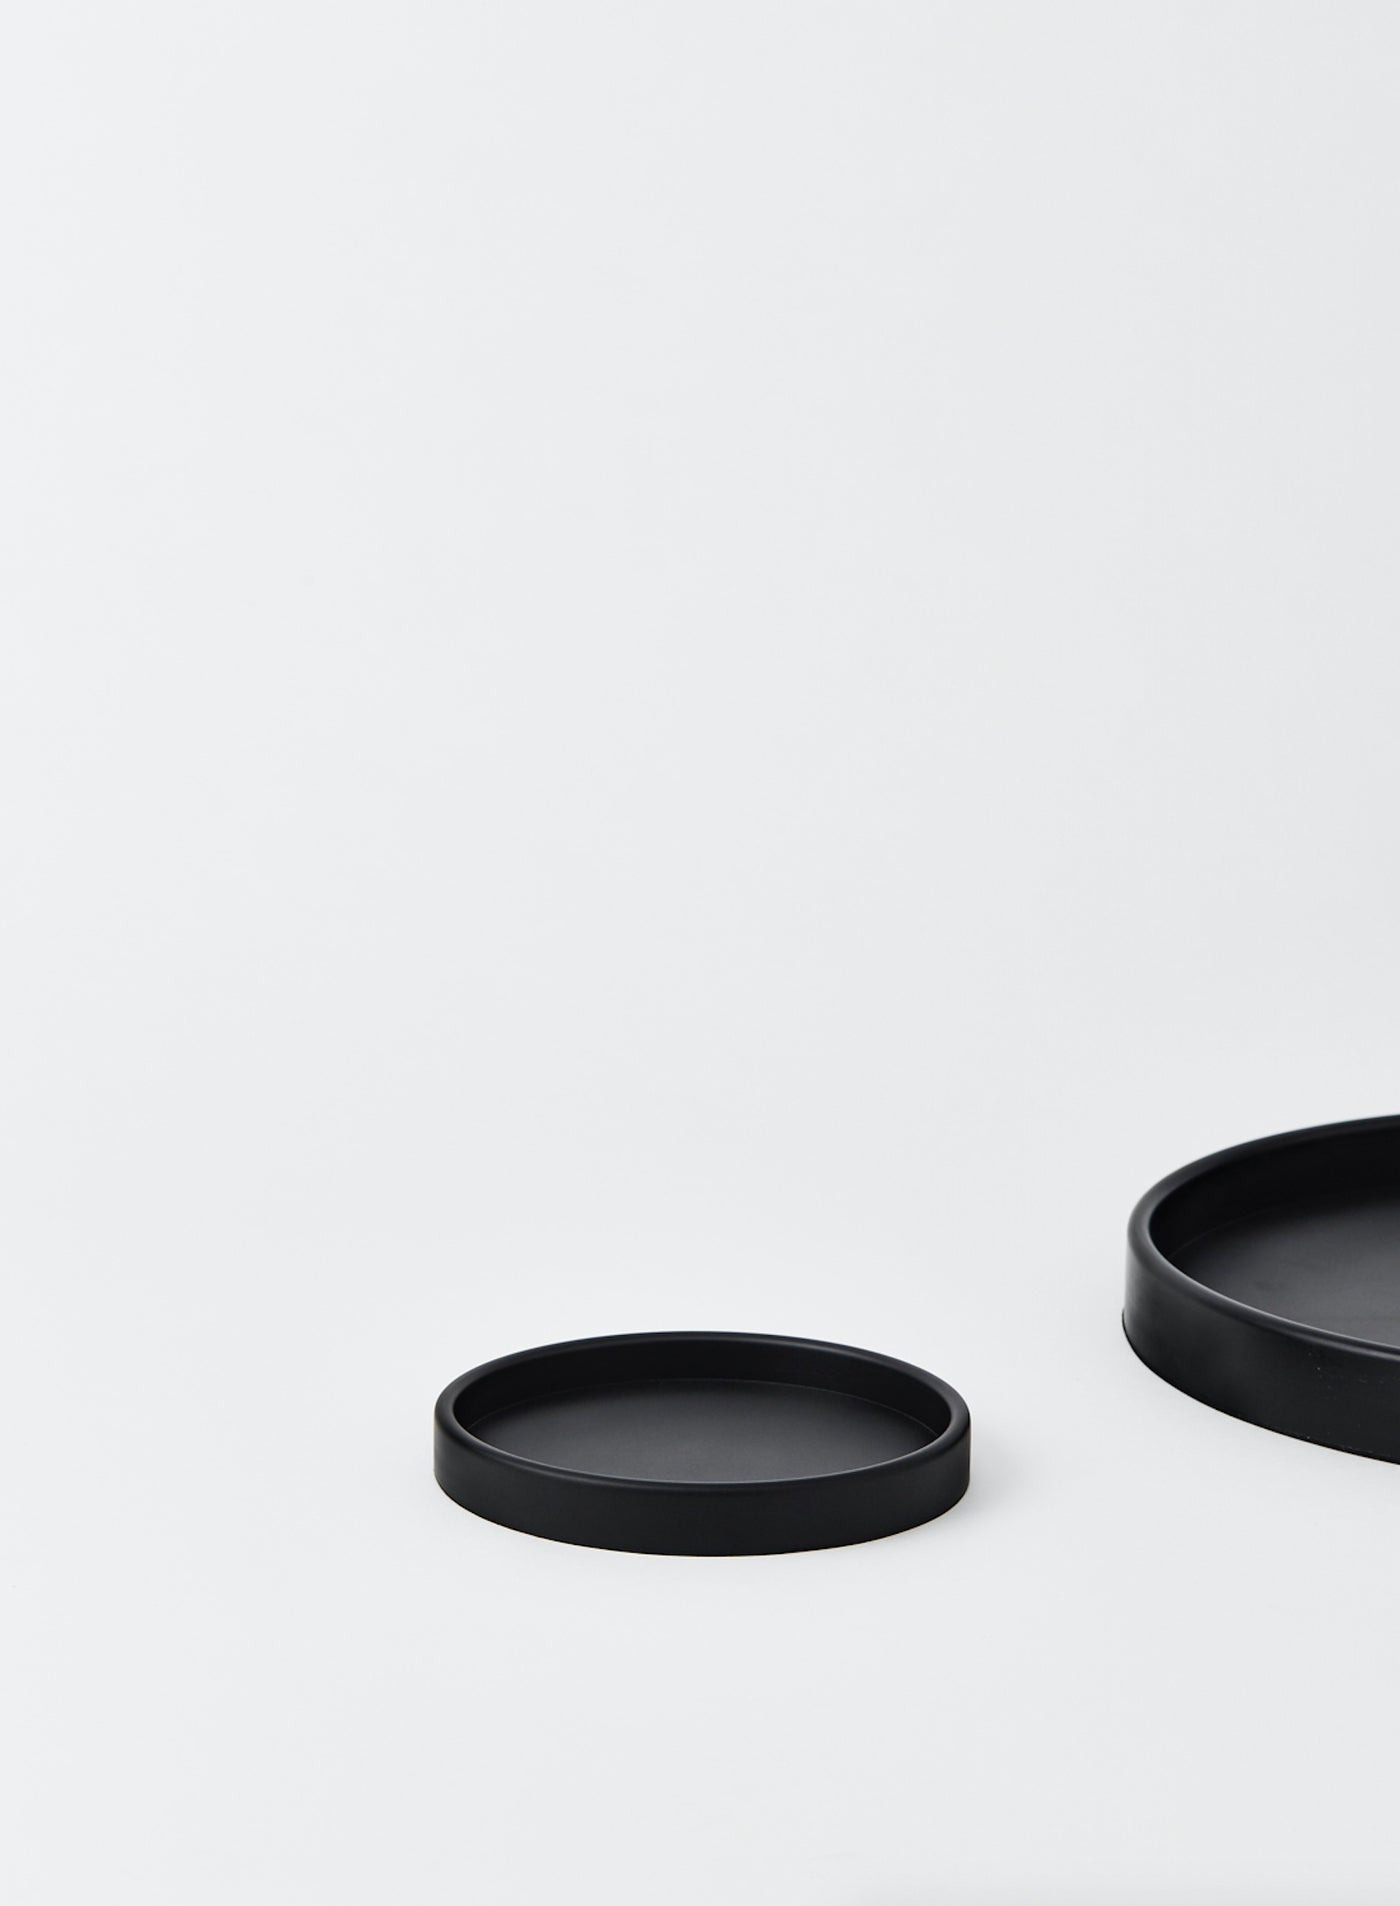 Small Black Round Rubber Tray